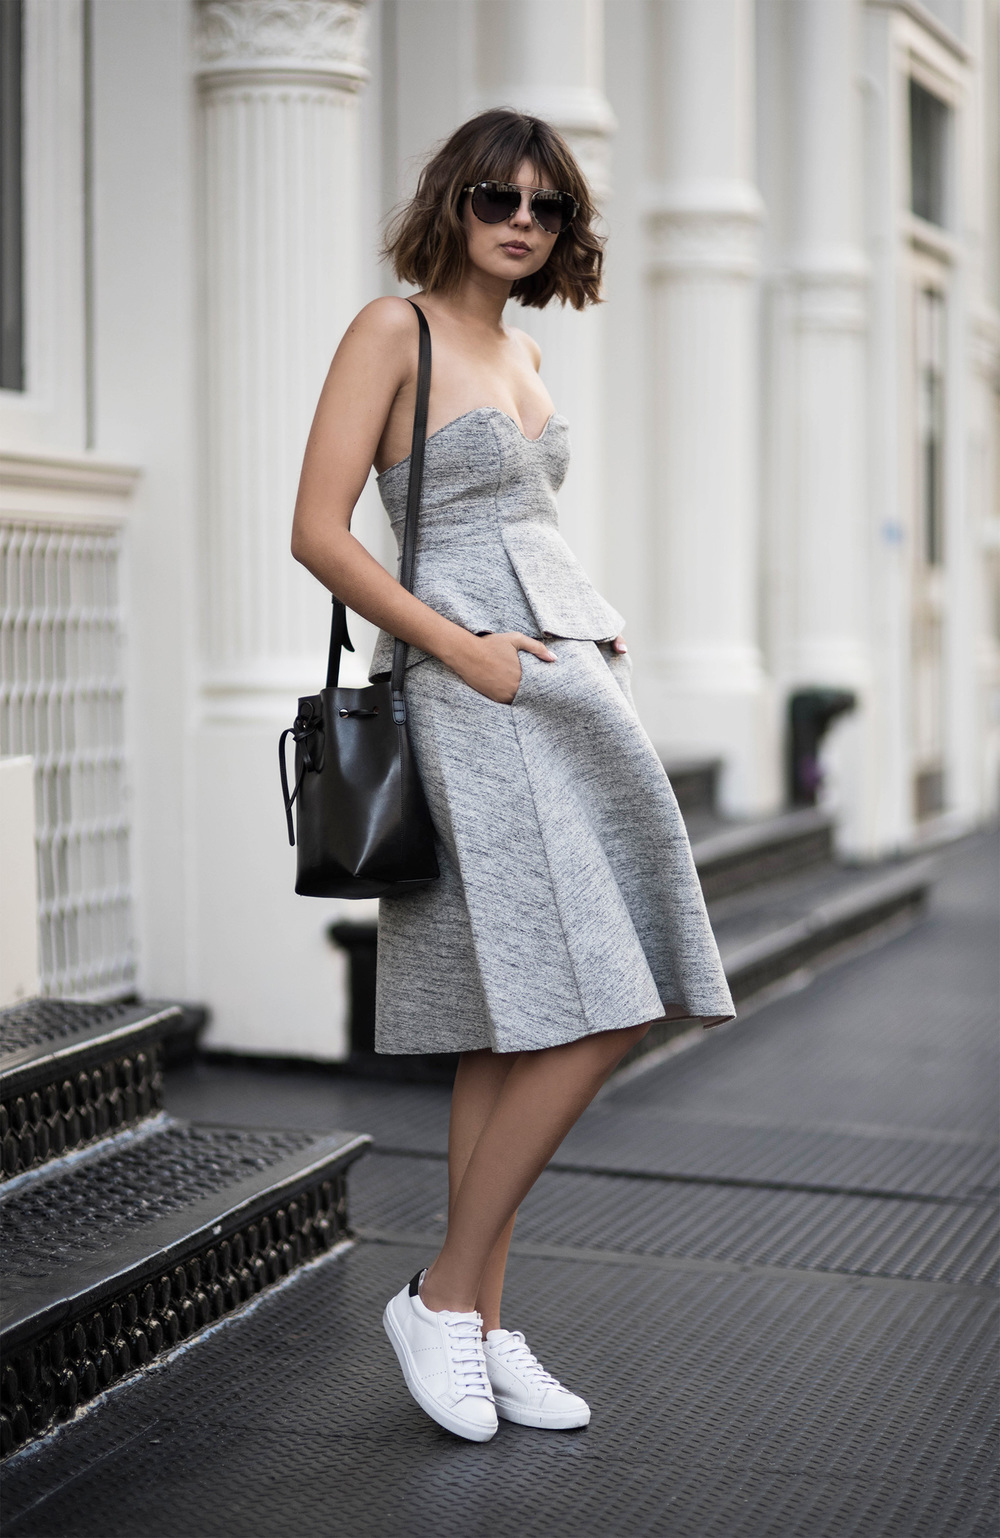 Grey Matter: Three New Looks to Try Now